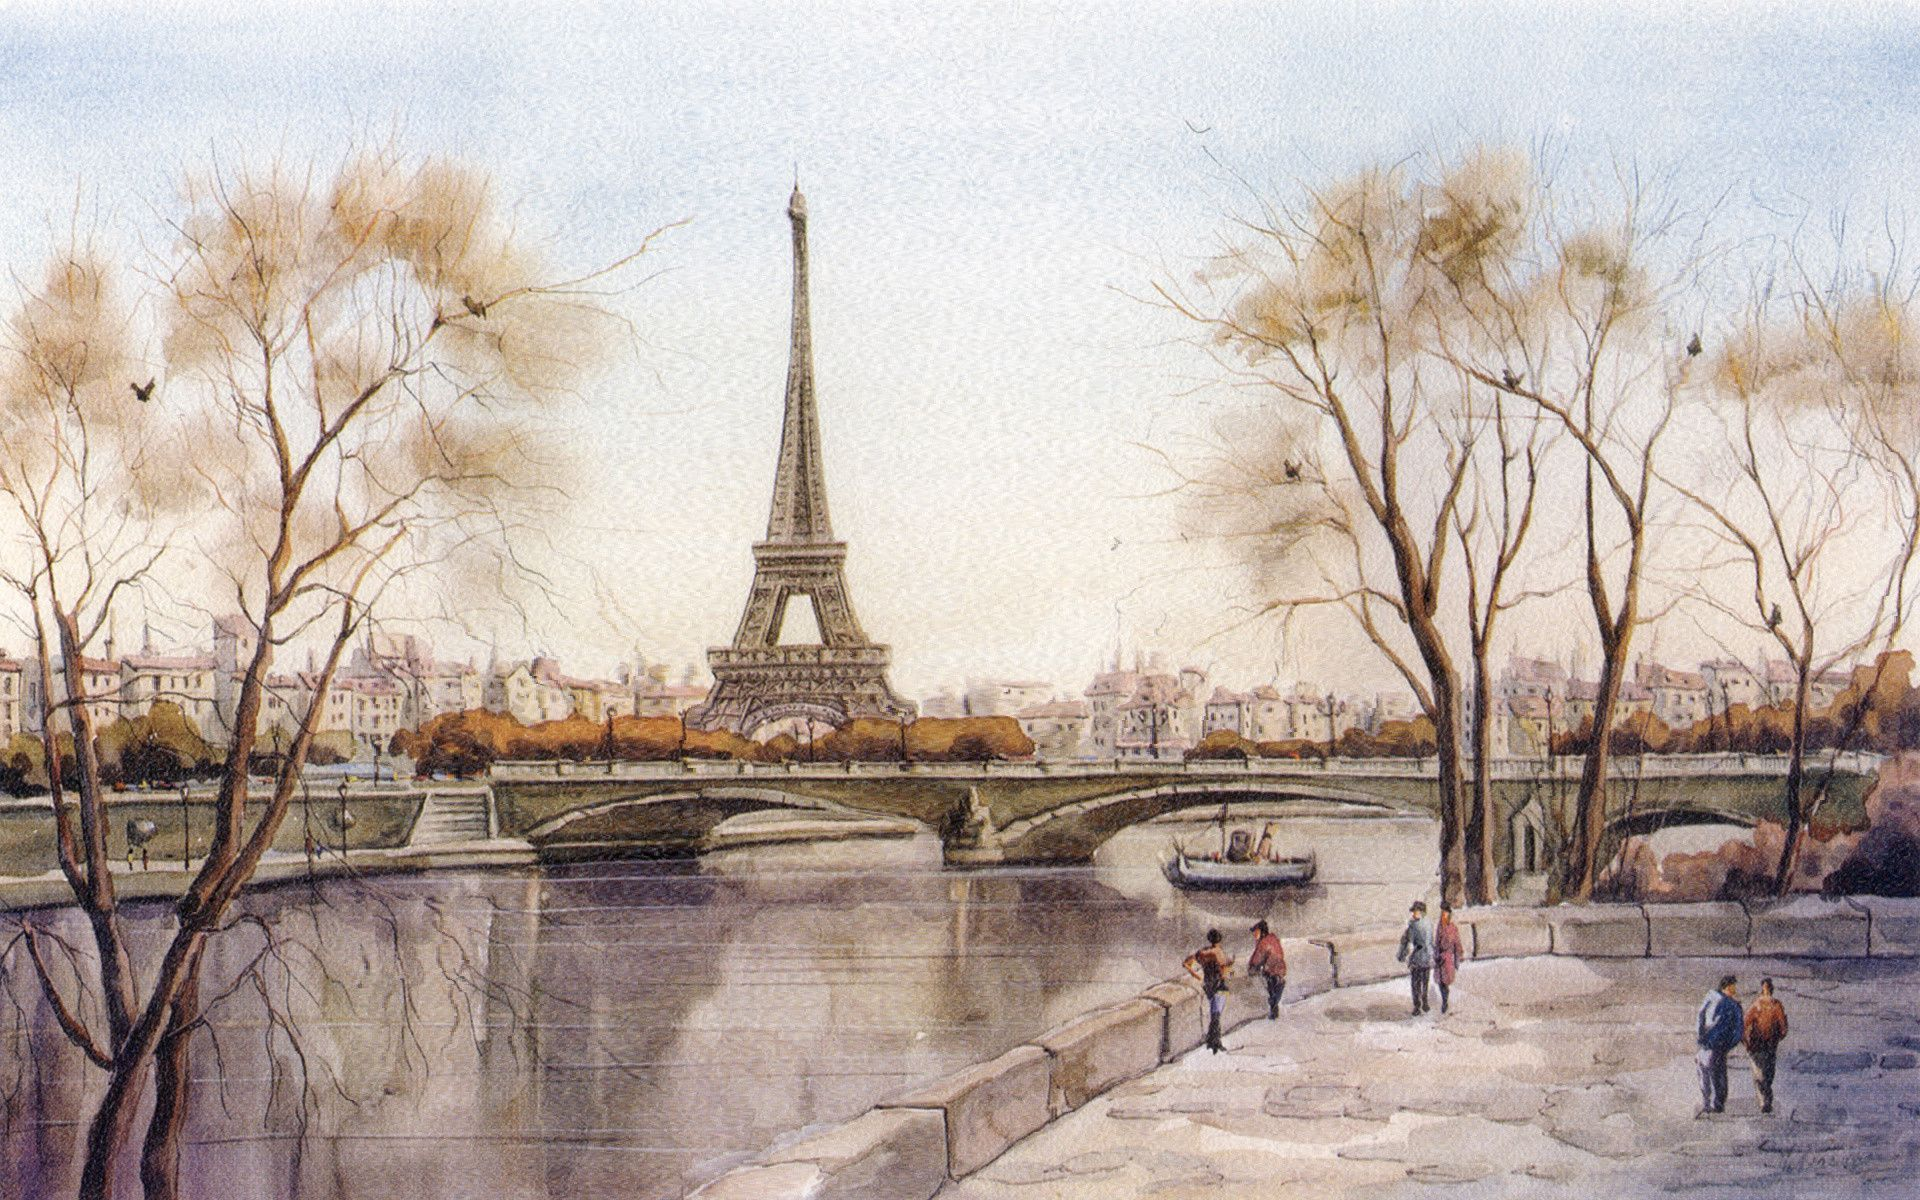 Paris wallpapers for desktop 53 wallpapers adorable for Wallpaper for